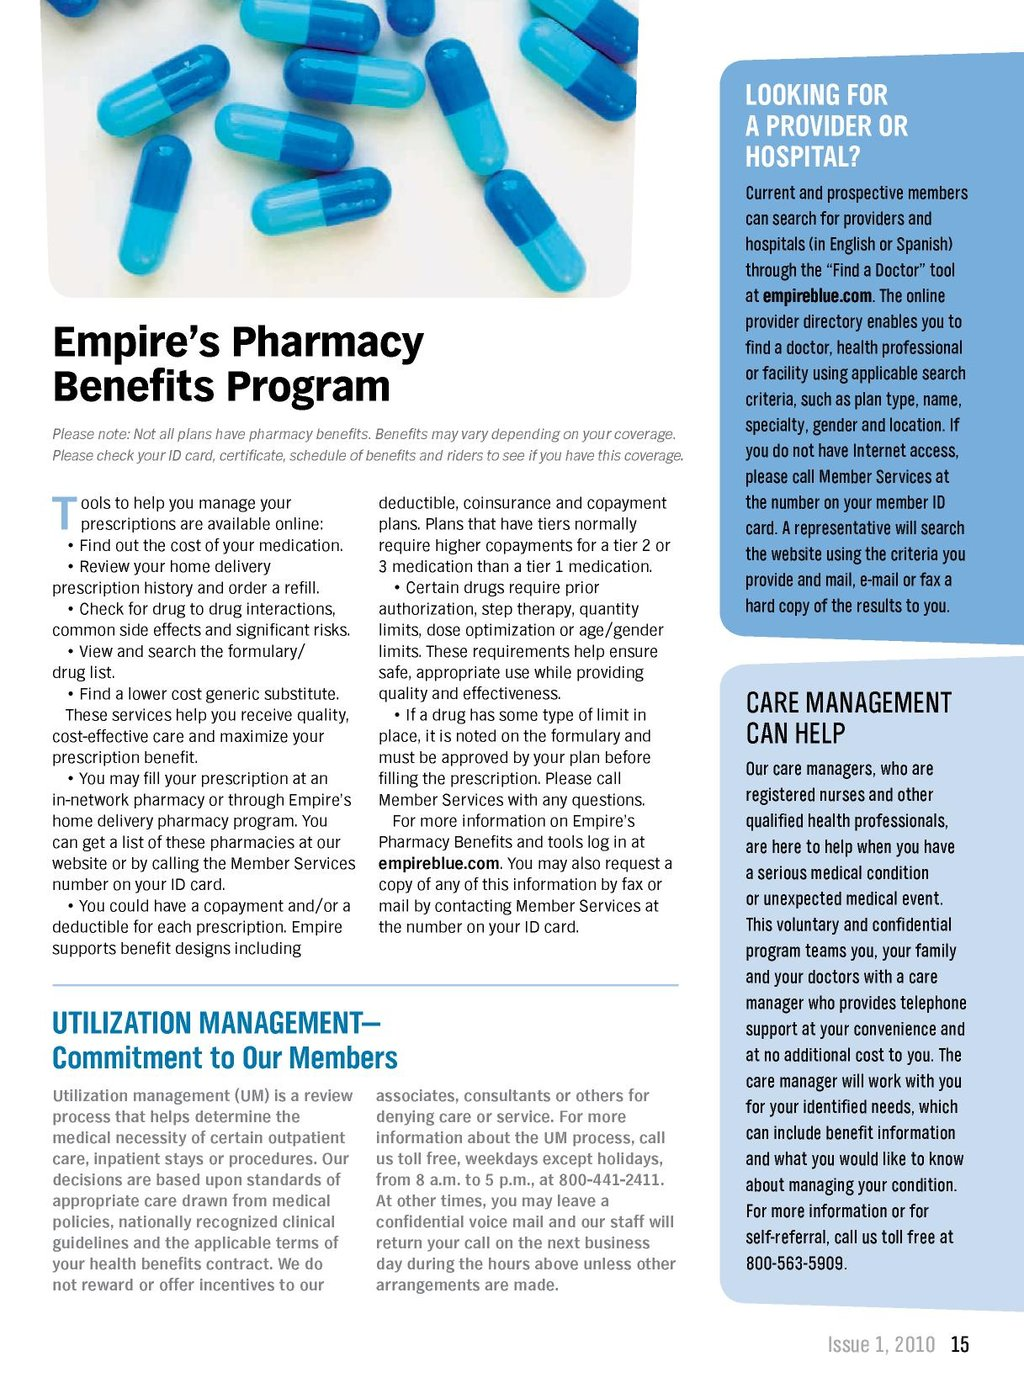 Healthy Solutions - Issue 1, 2010 - Anthem POS